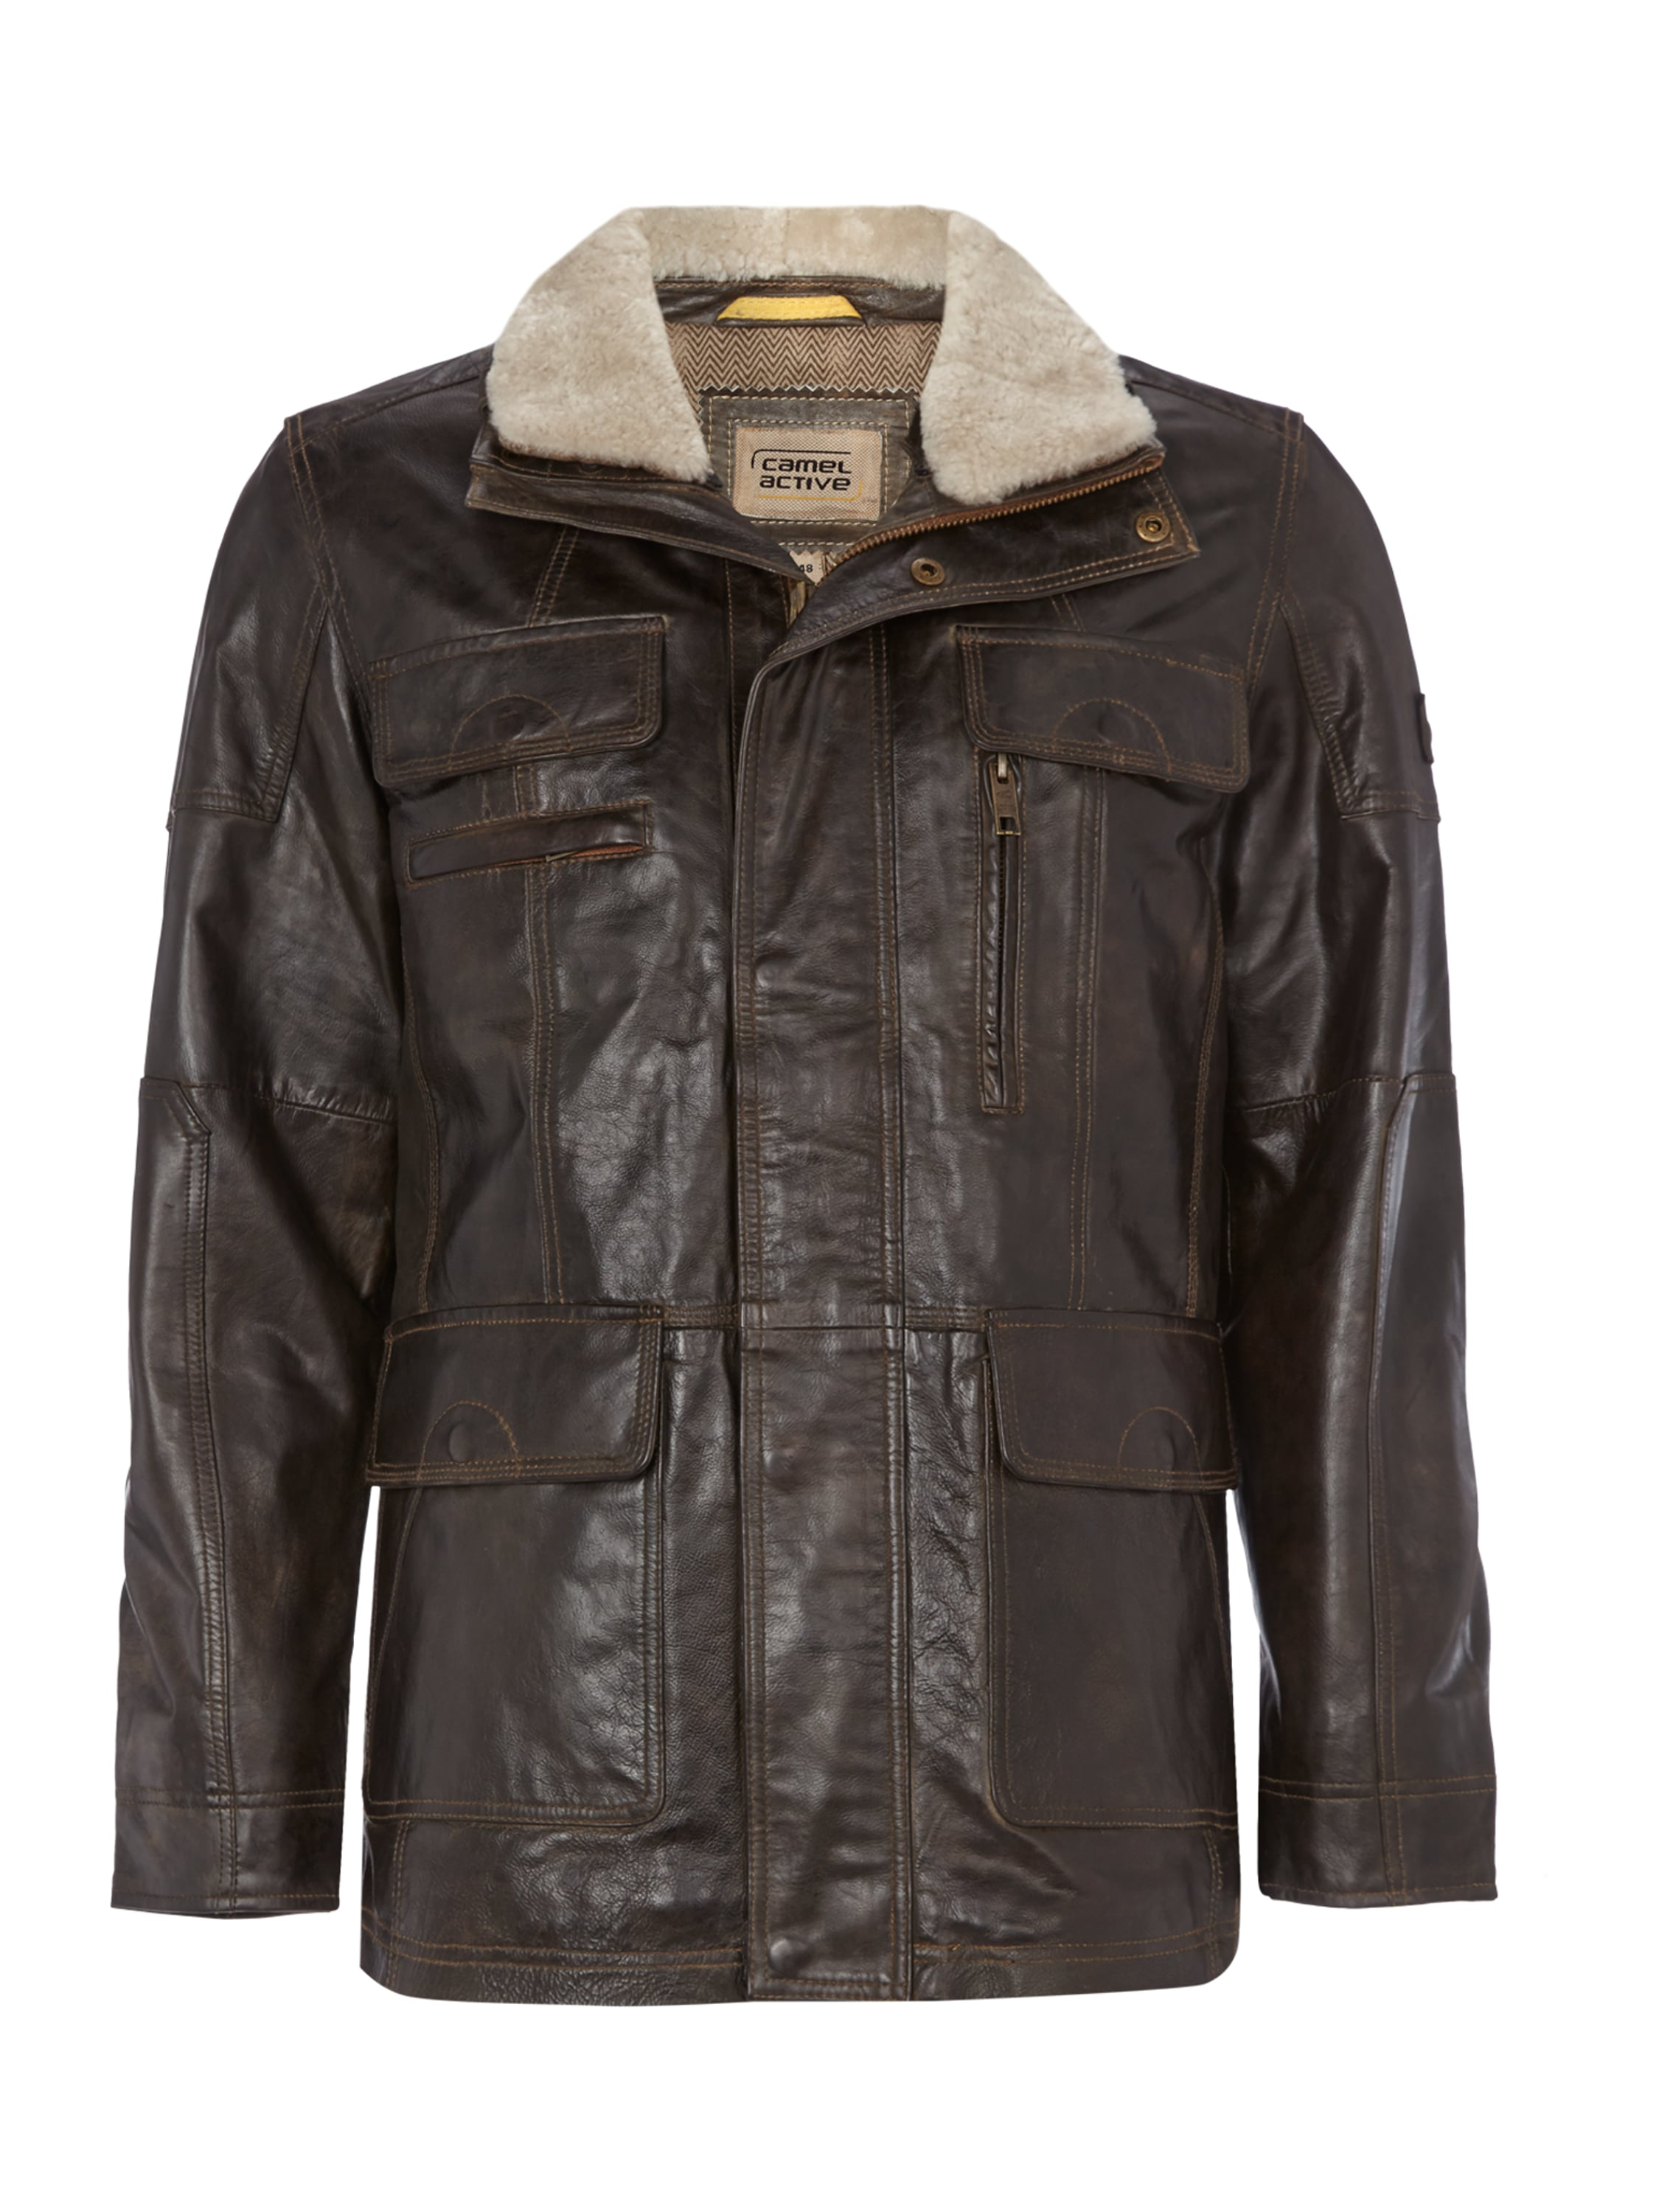 camel active lederjacke im vintage look in braun online kaufen. Black Bedroom Furniture Sets. Home Design Ideas